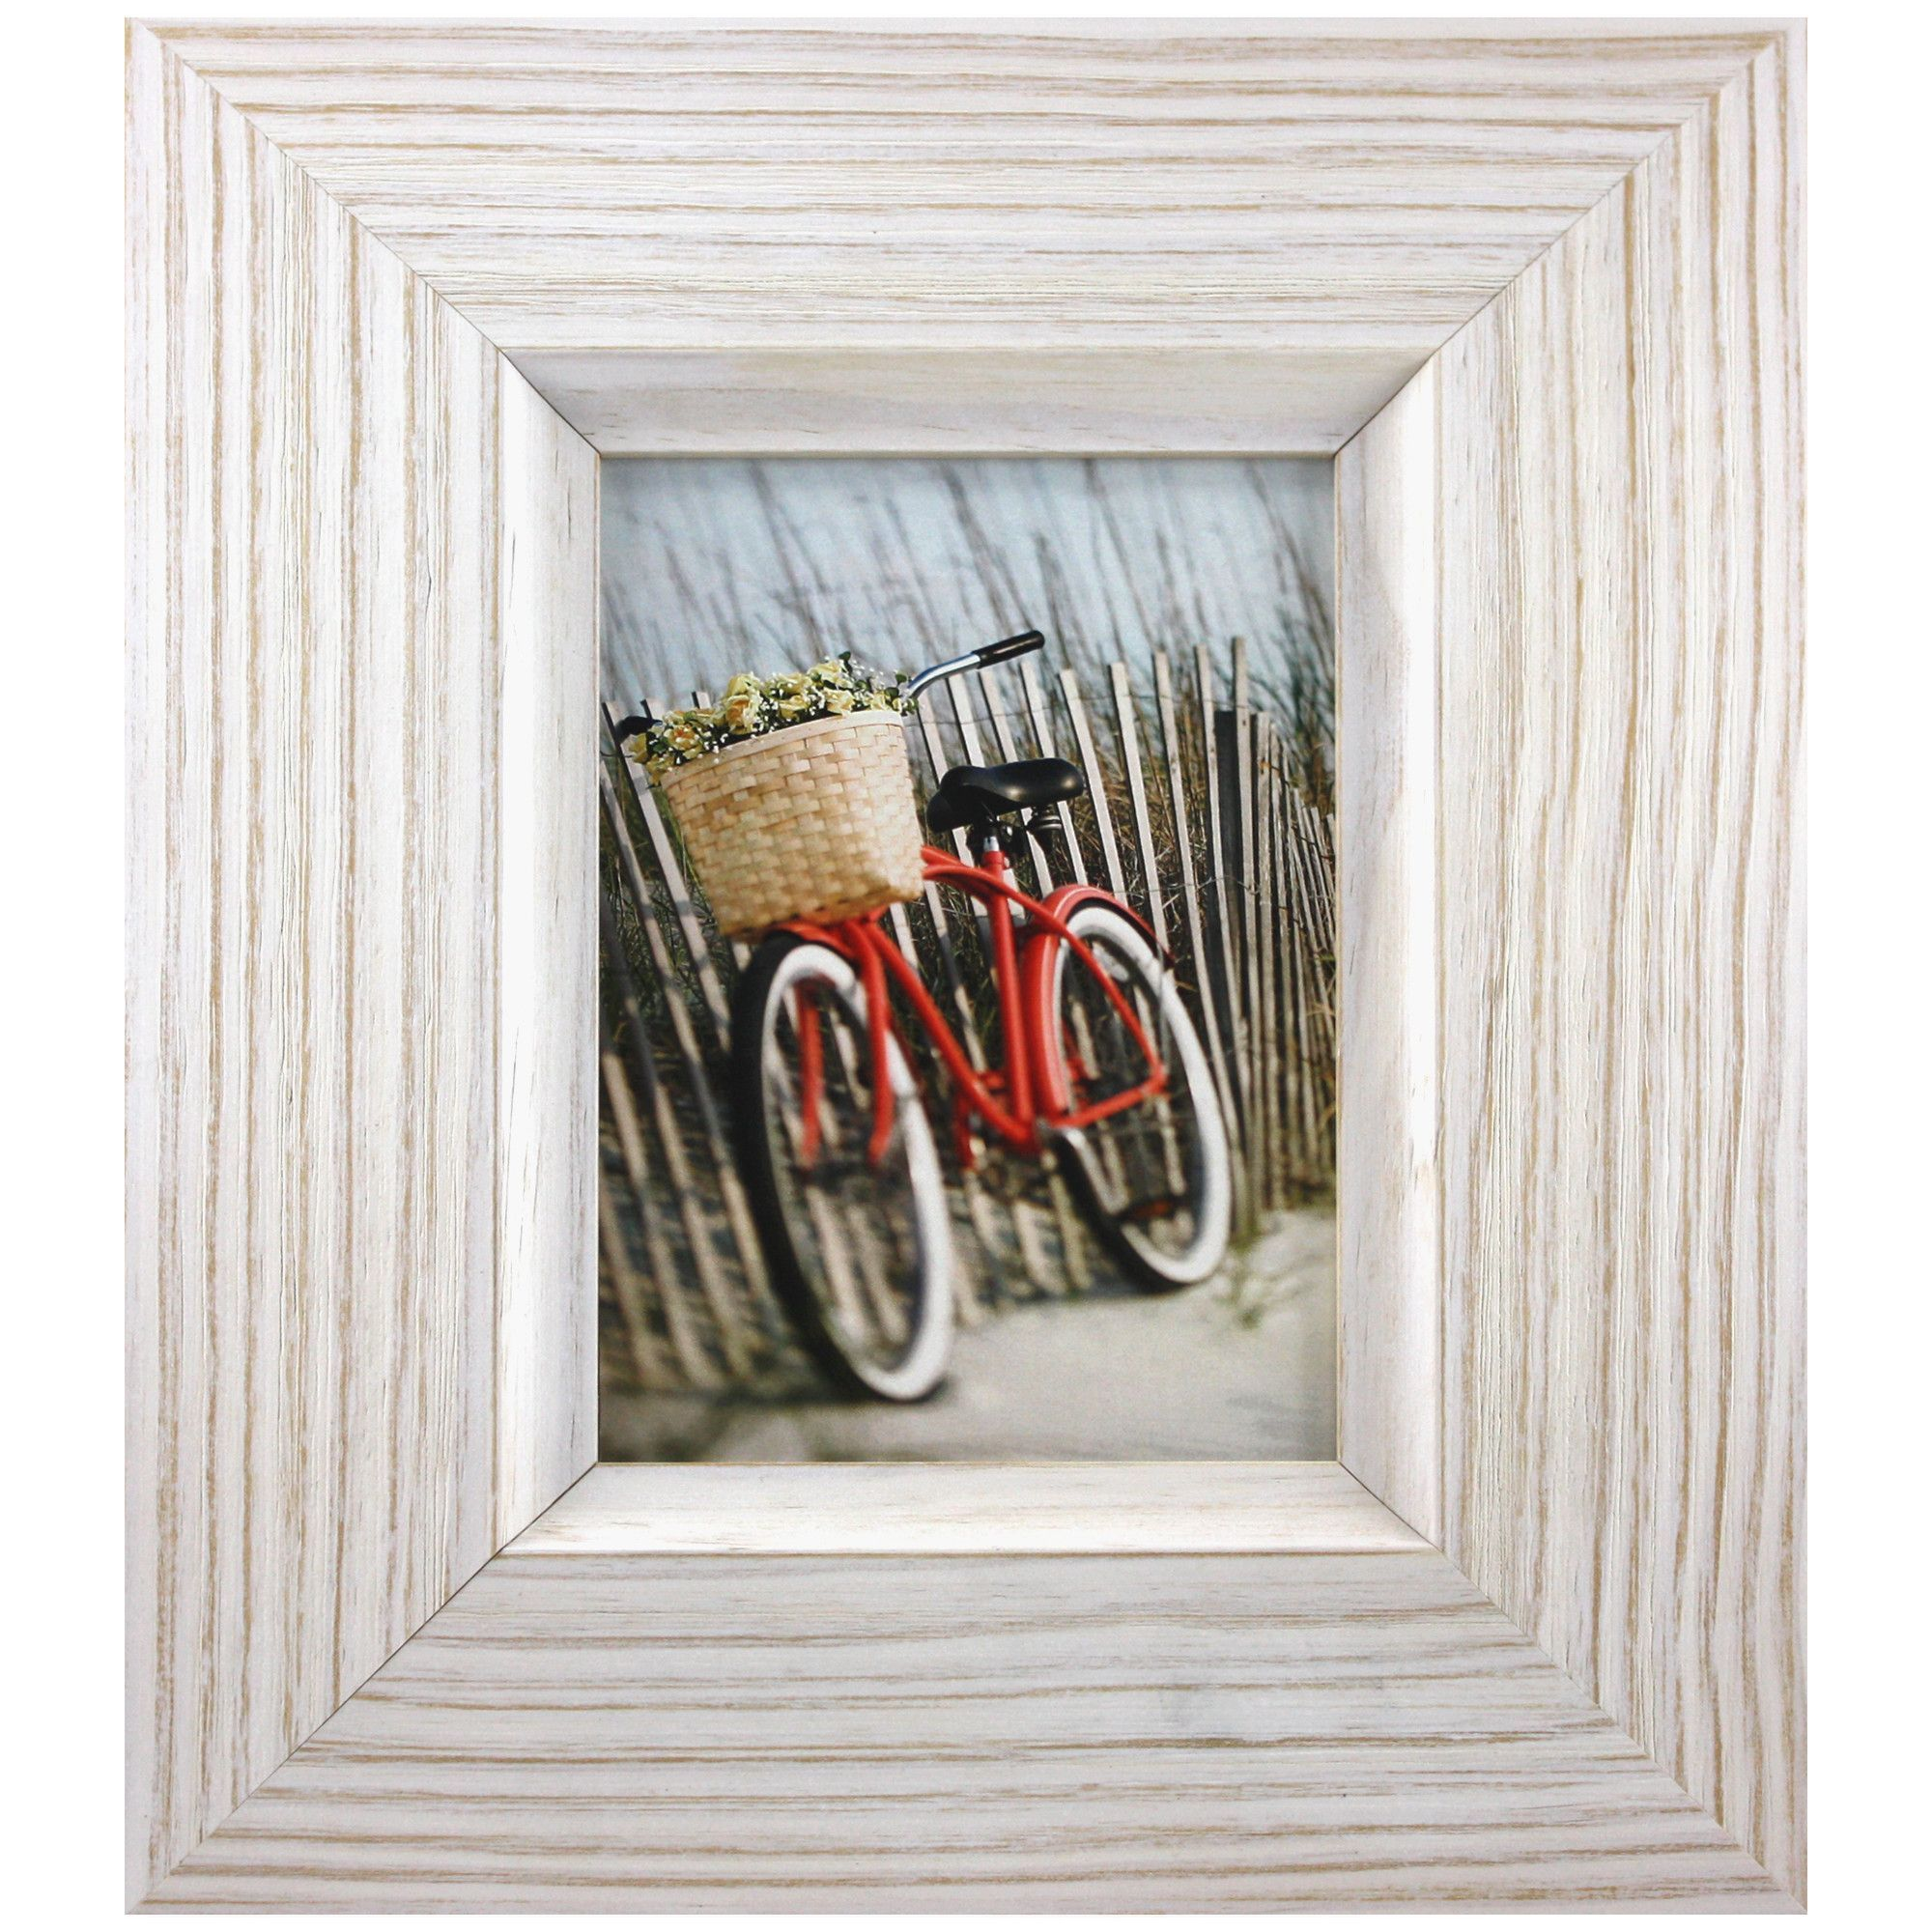 Hyannis classic 5 x 7 picture frame products pinterest fetco home decor hyannis classic x picture frame color jeuxipadfo Gallery